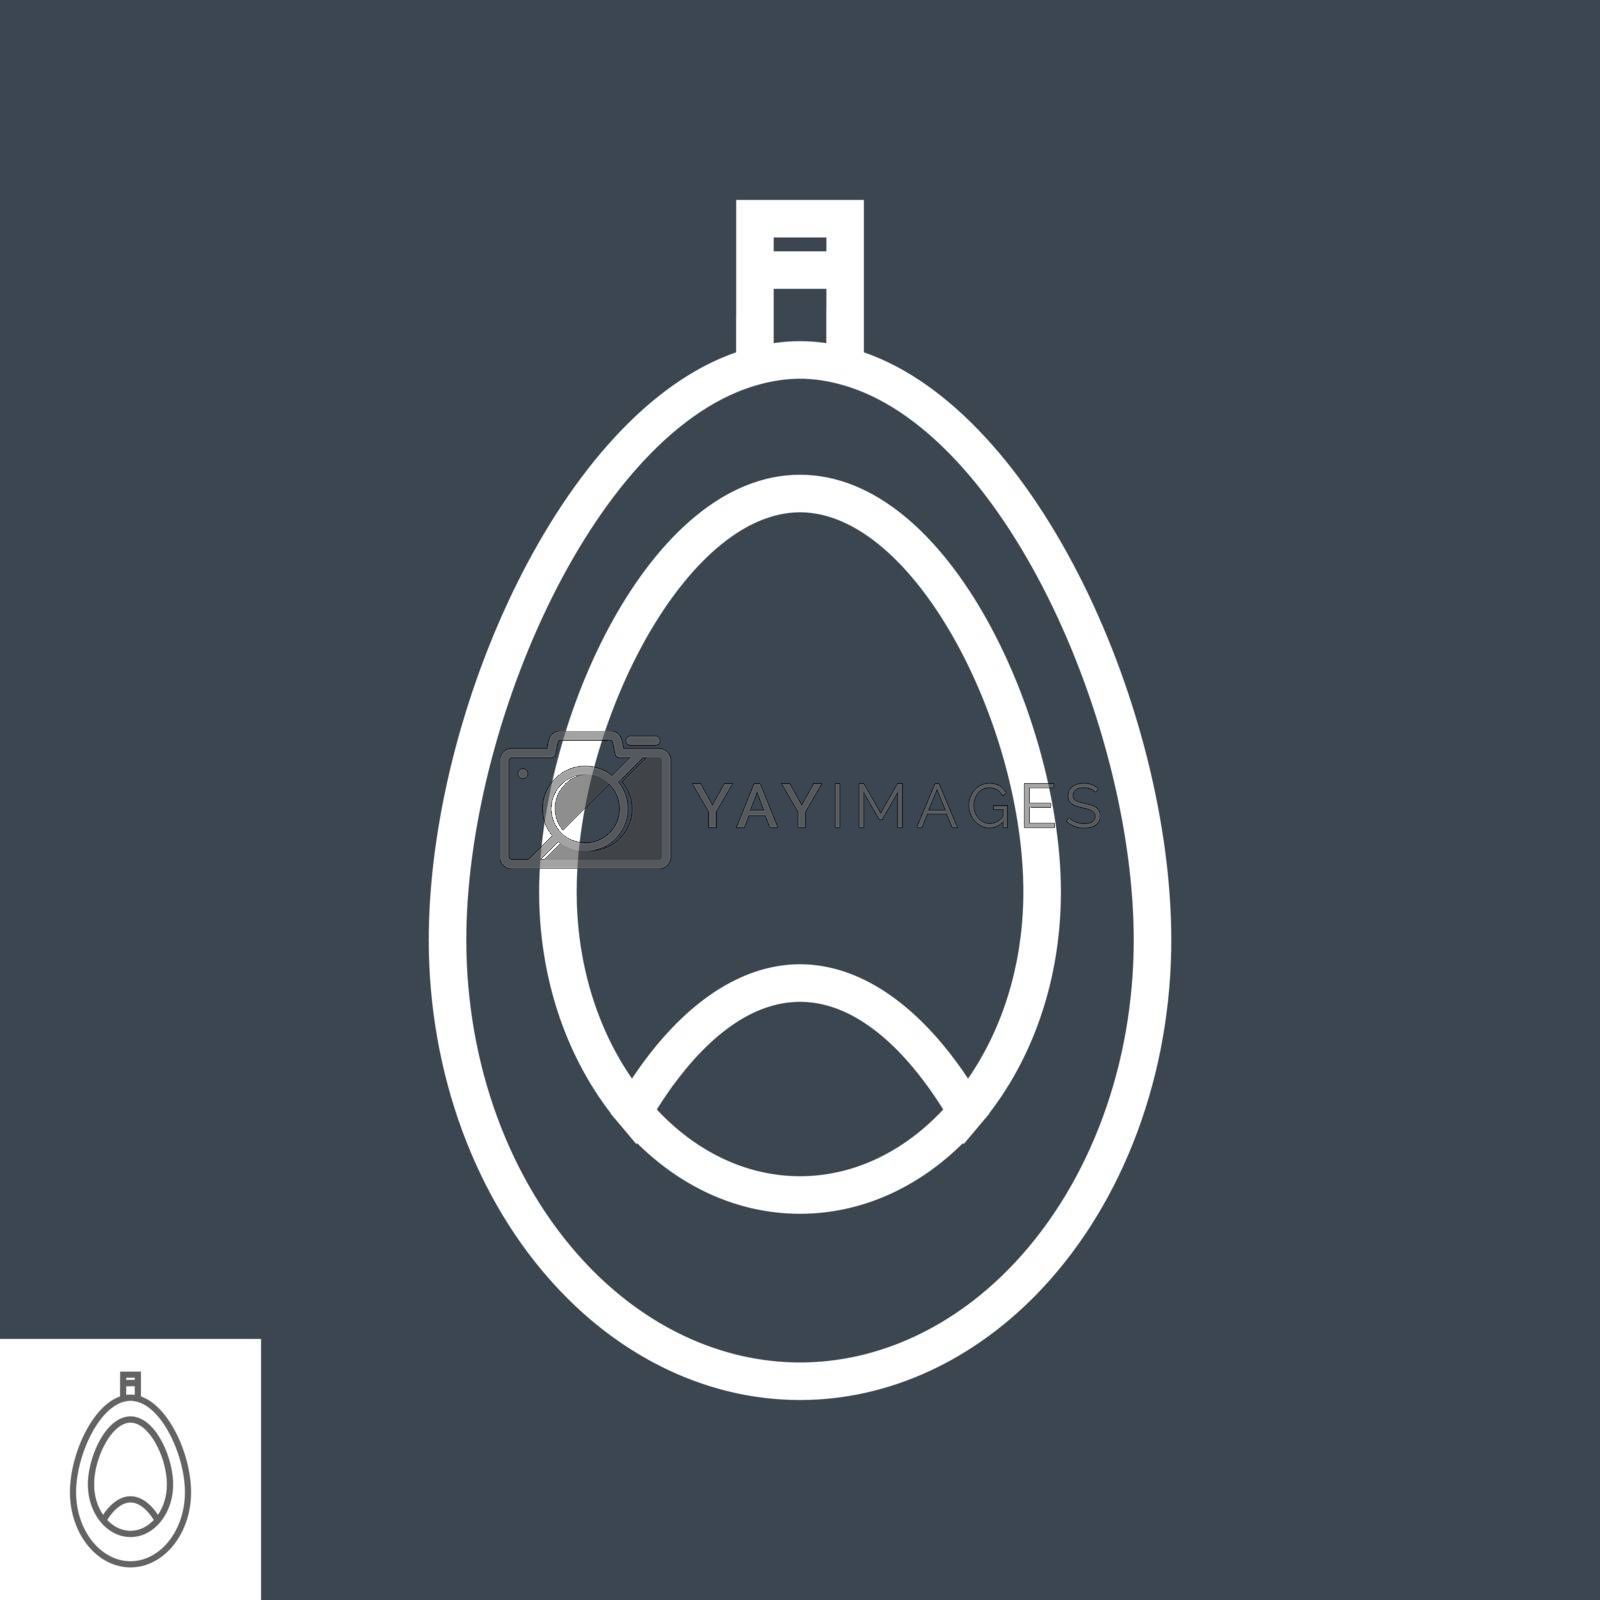 Pissoir Thin Line Vector Icon Isolated on the Black Background.